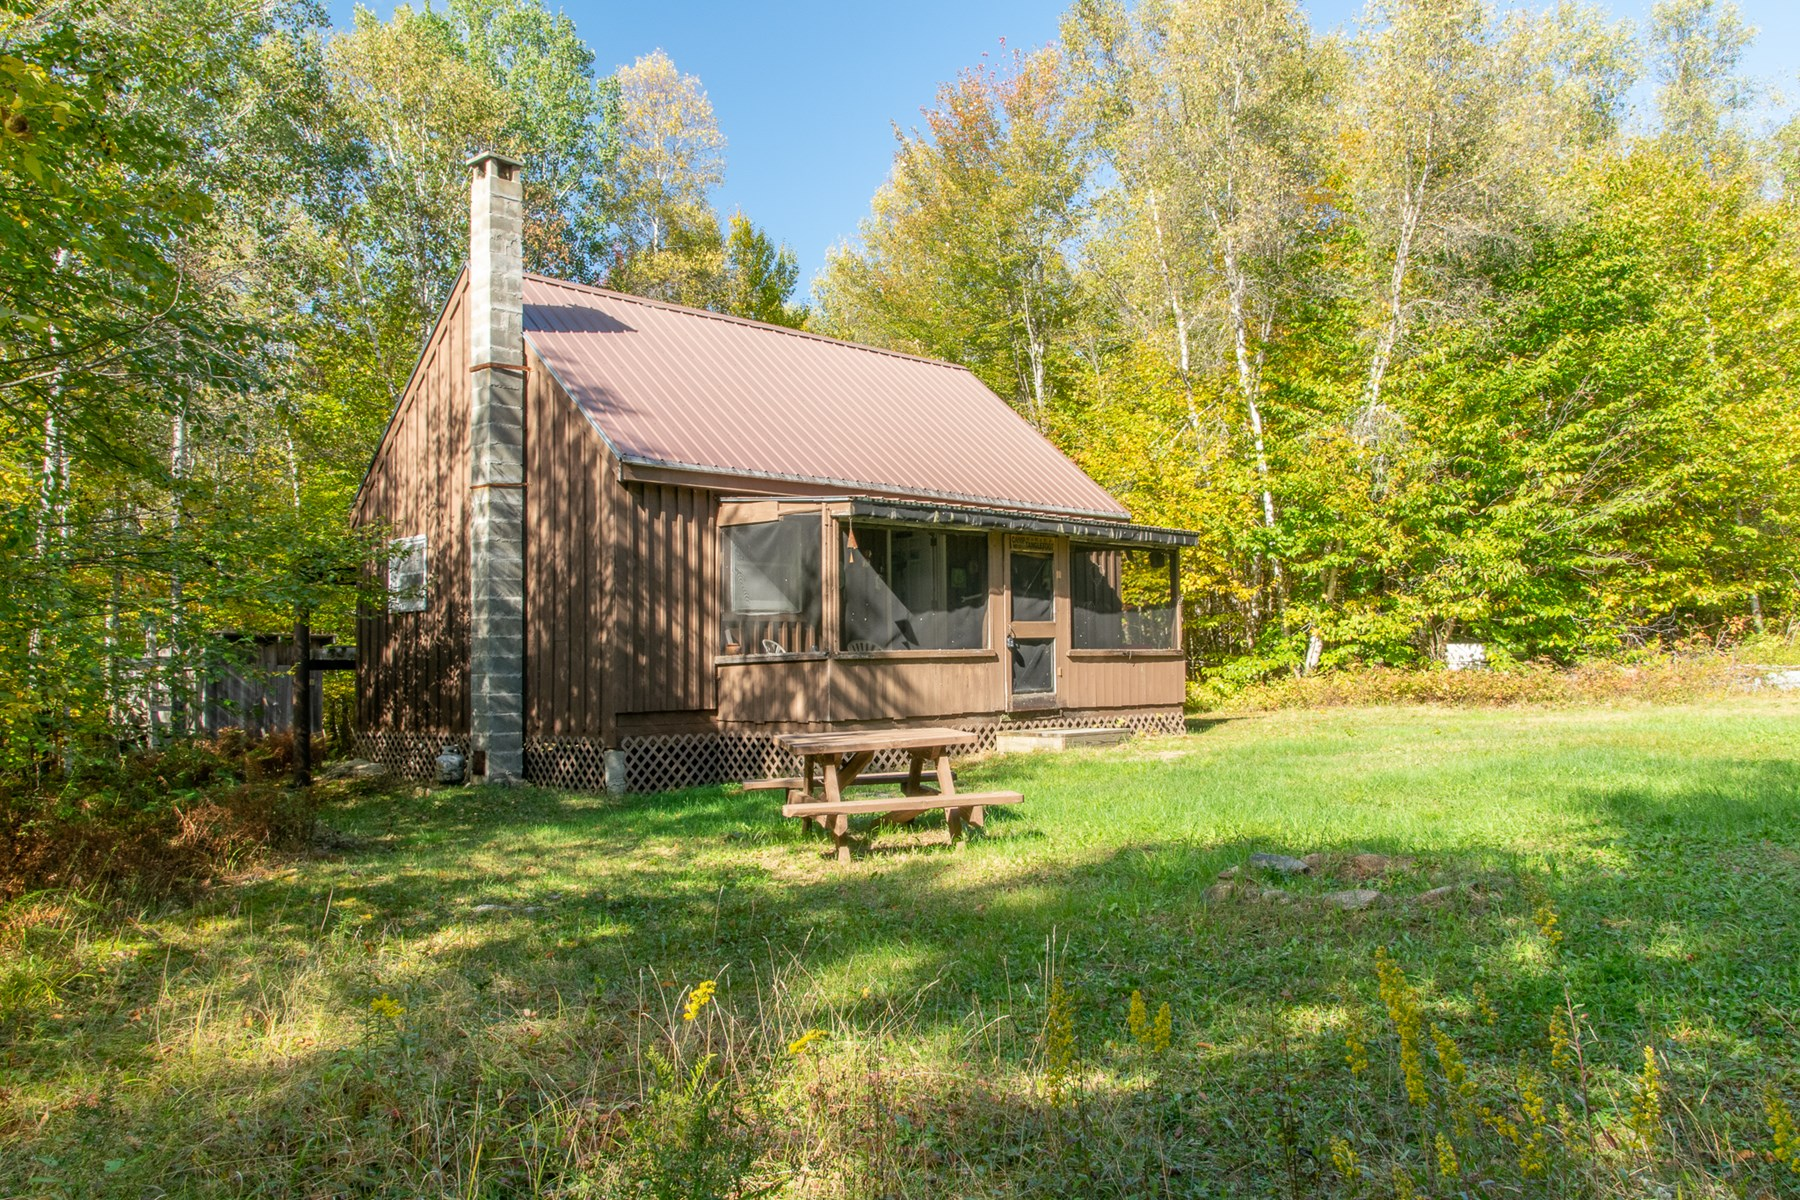 Deer Hunting Camp For Sale in Springfield, Maine